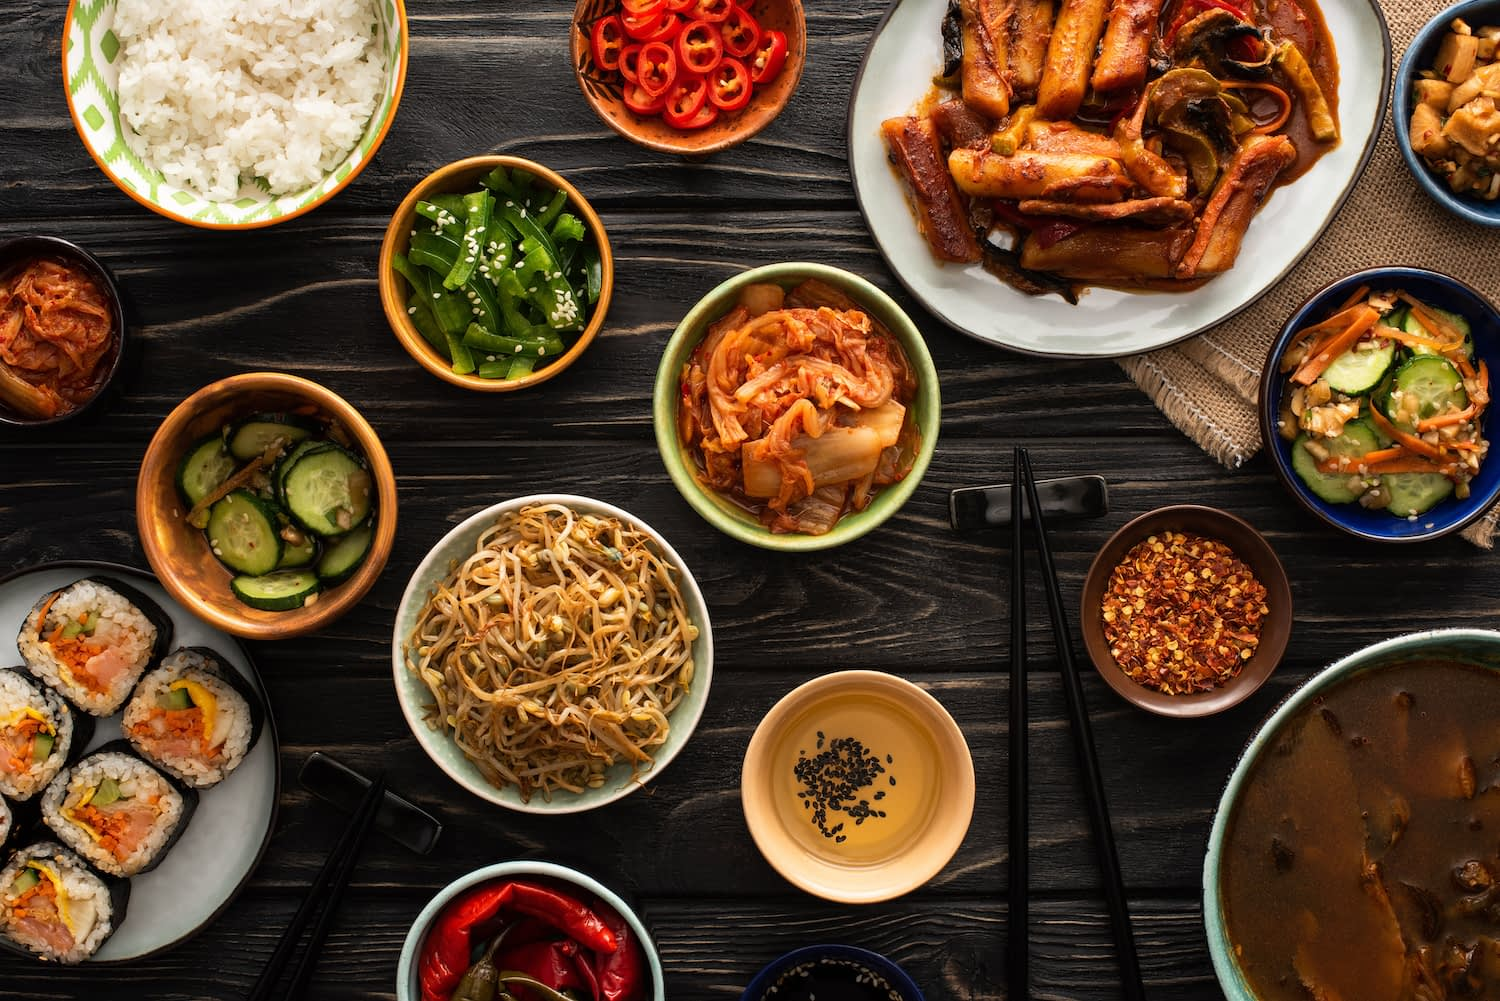 top view of korean traditional dishes near chopsticks and cotton napkin on wooden surface